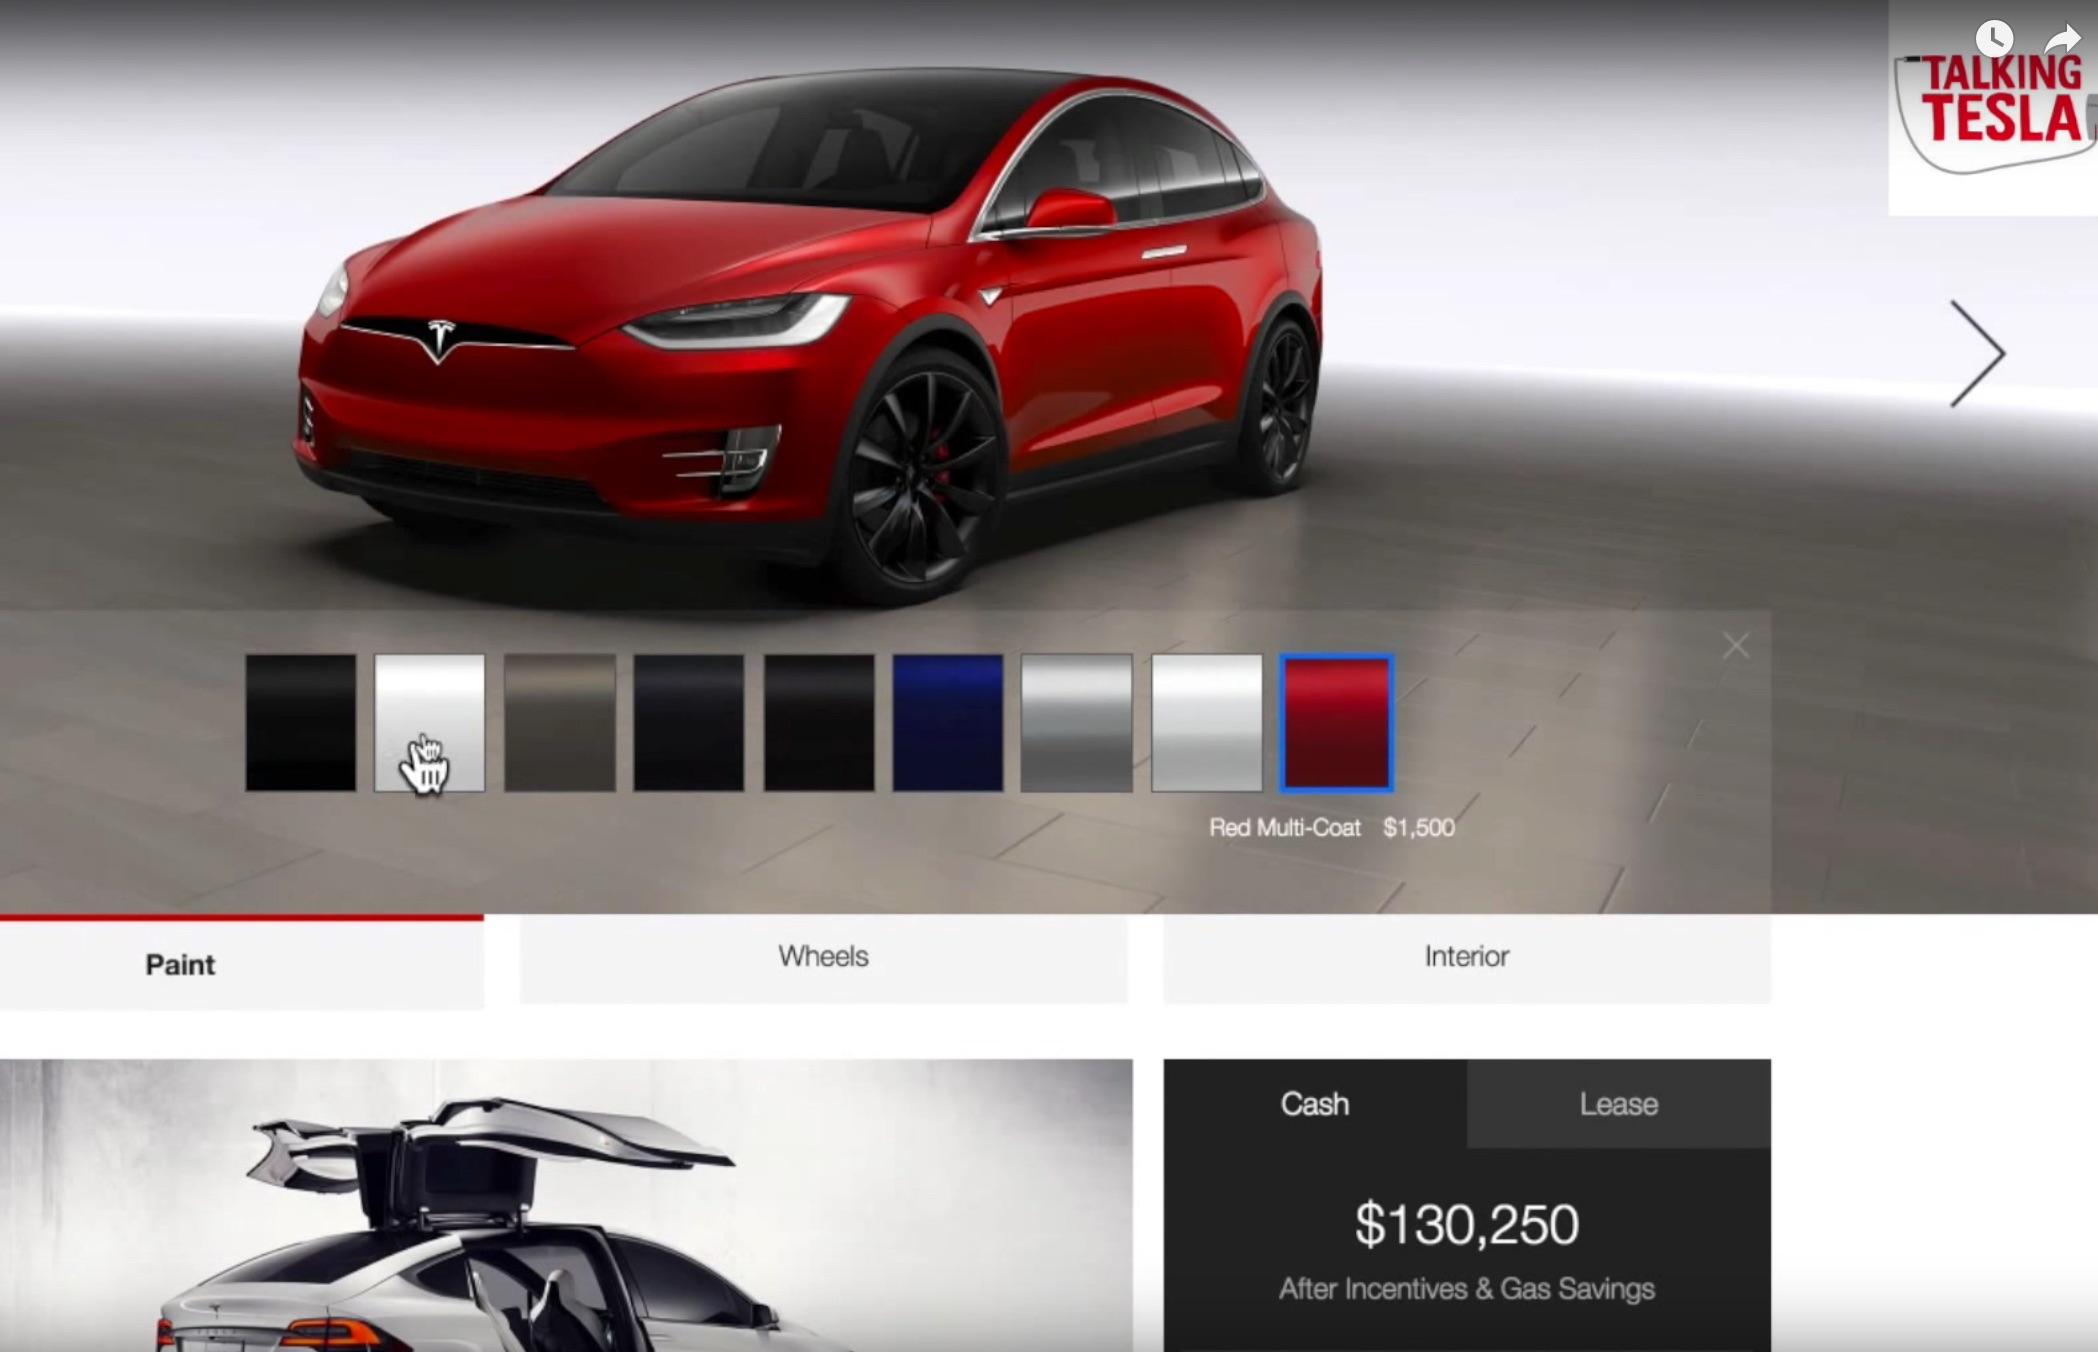 Red Model X Configurator